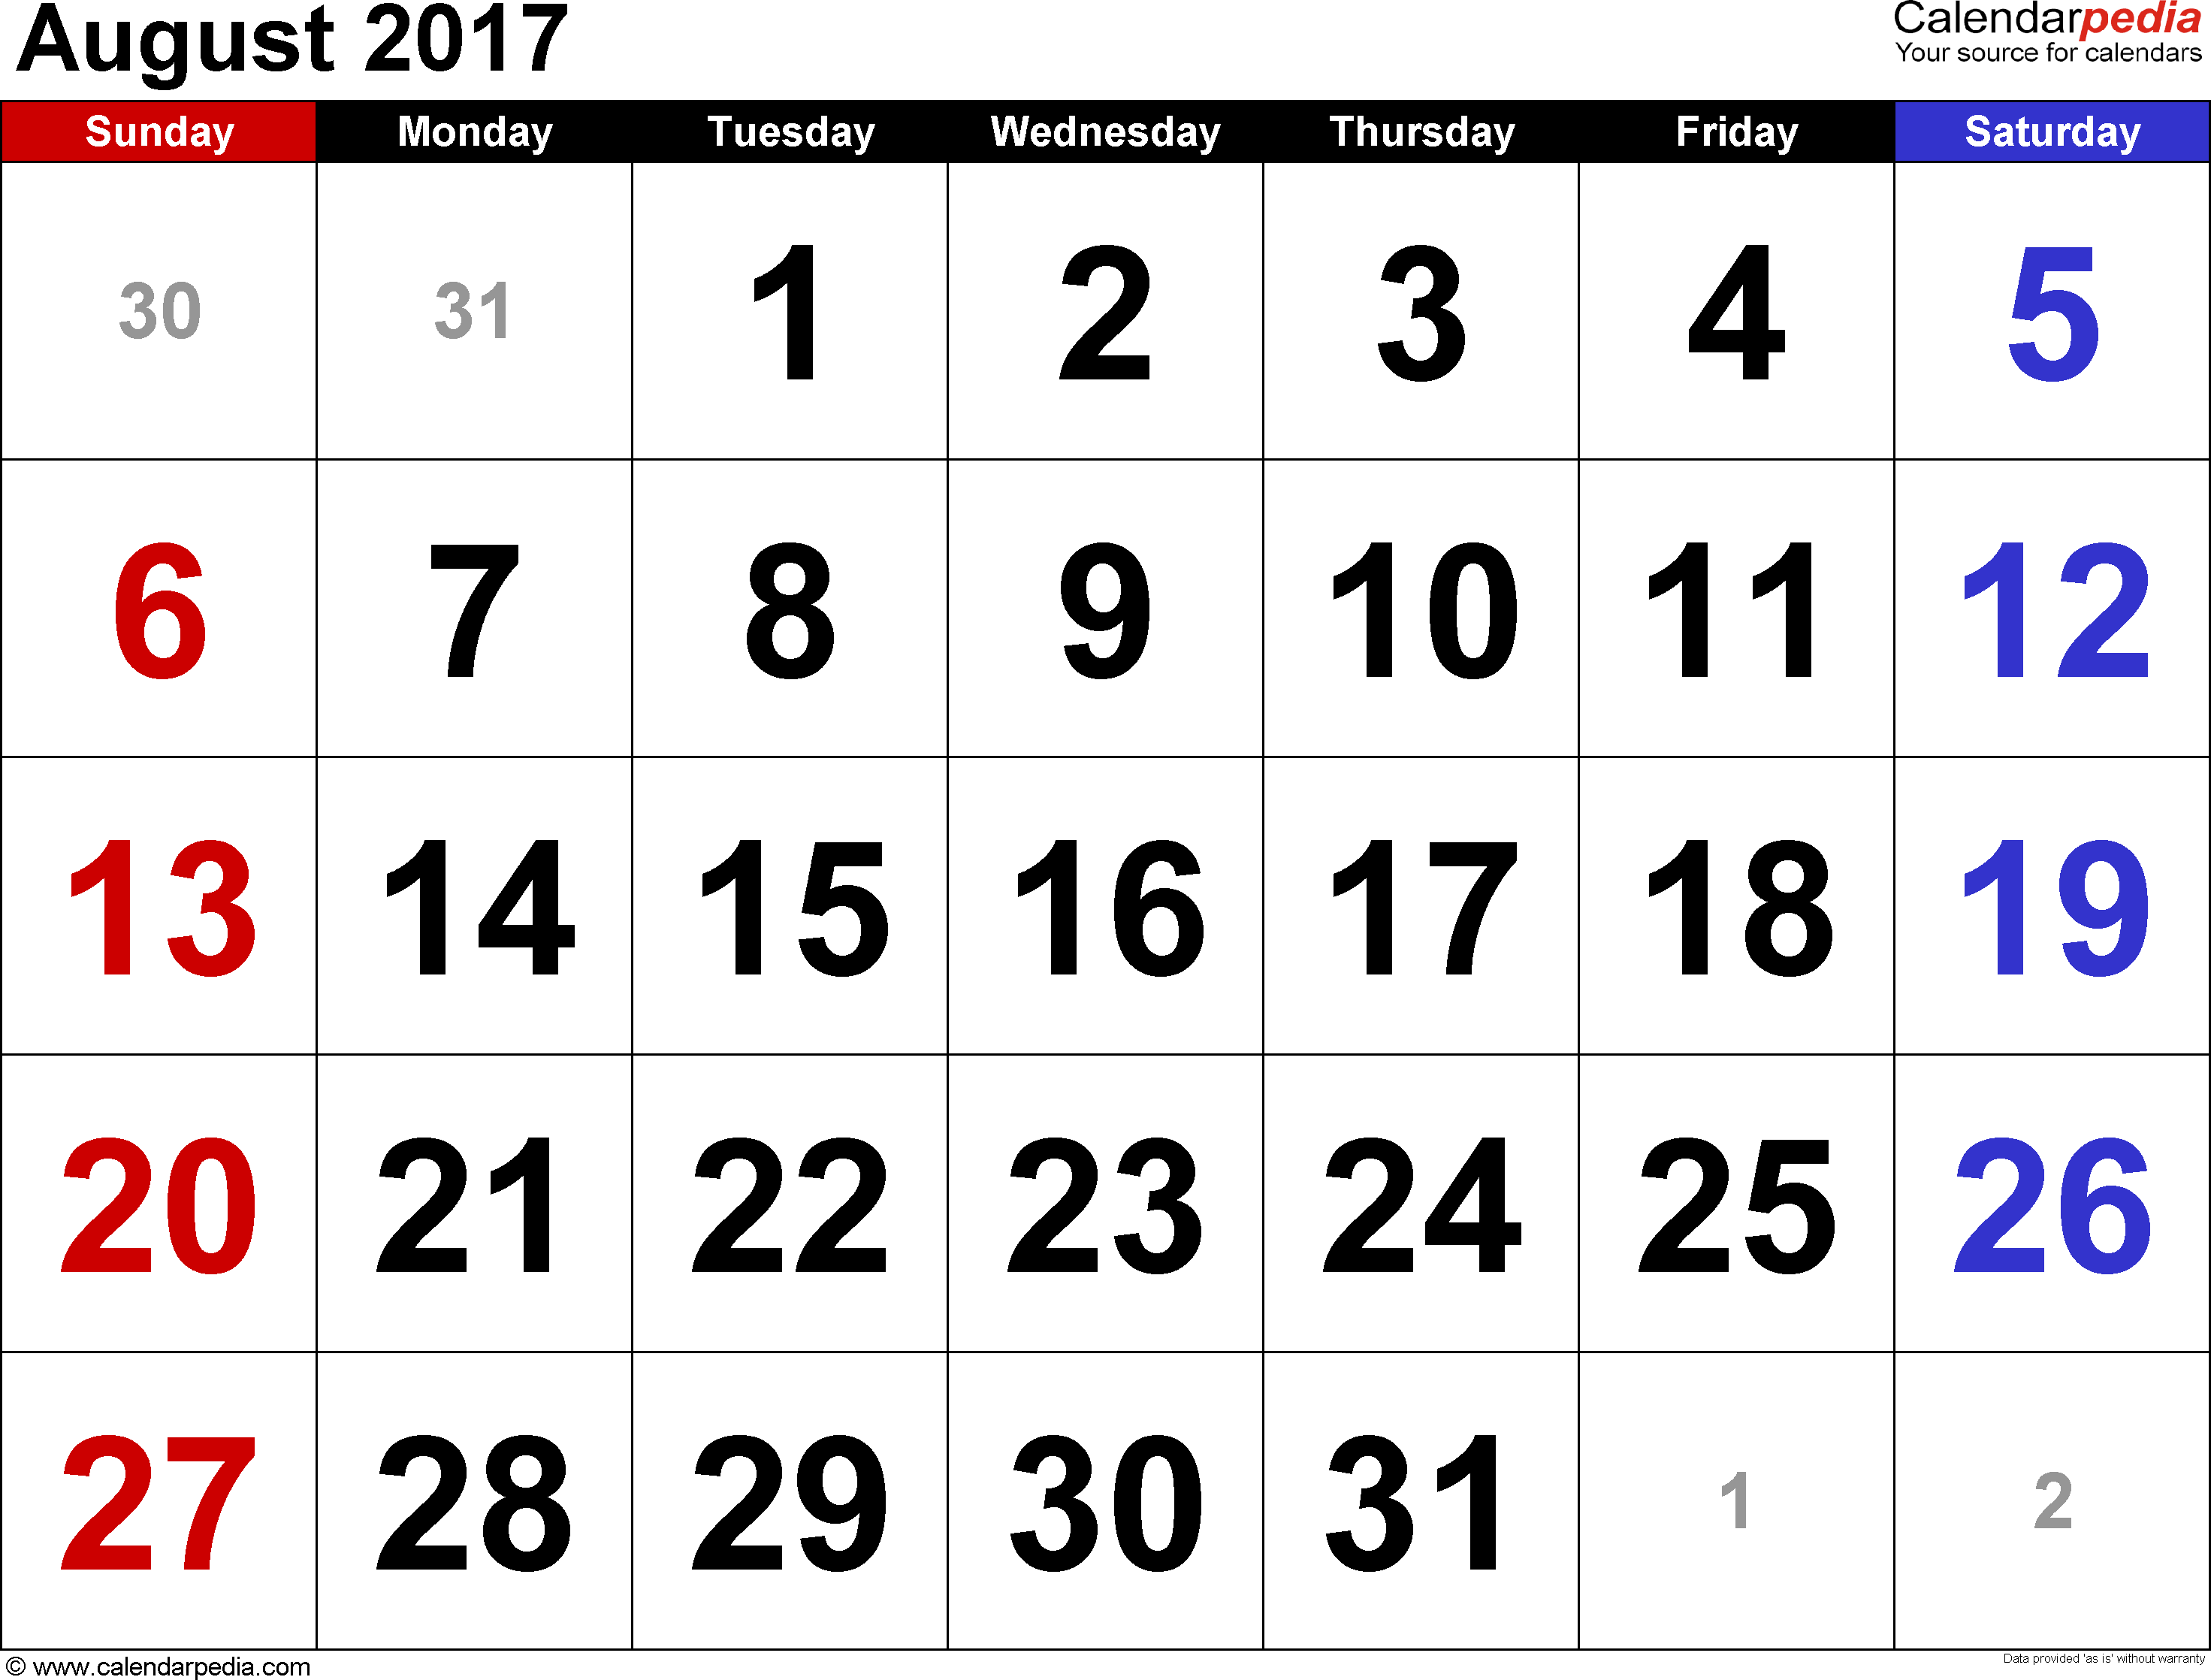 August 2017 calendar, landscape orientation, large numerals, available as printable templates for Word, Excel and PDF